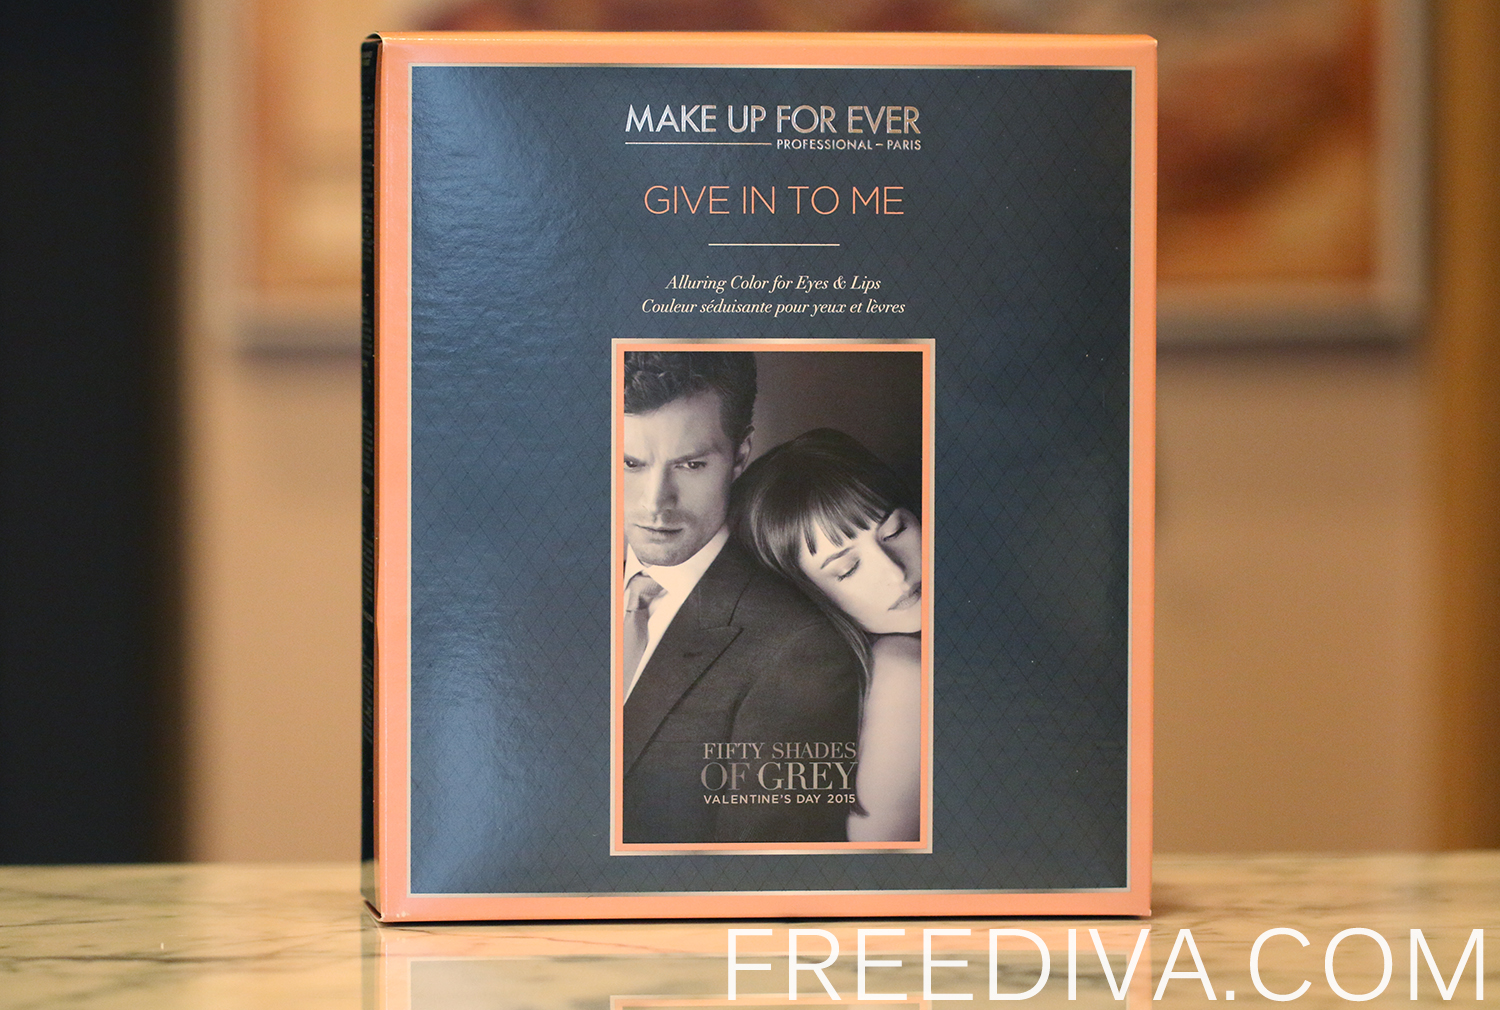 Give in to Me, Make Up For Ever, Fifty Shades of Grey